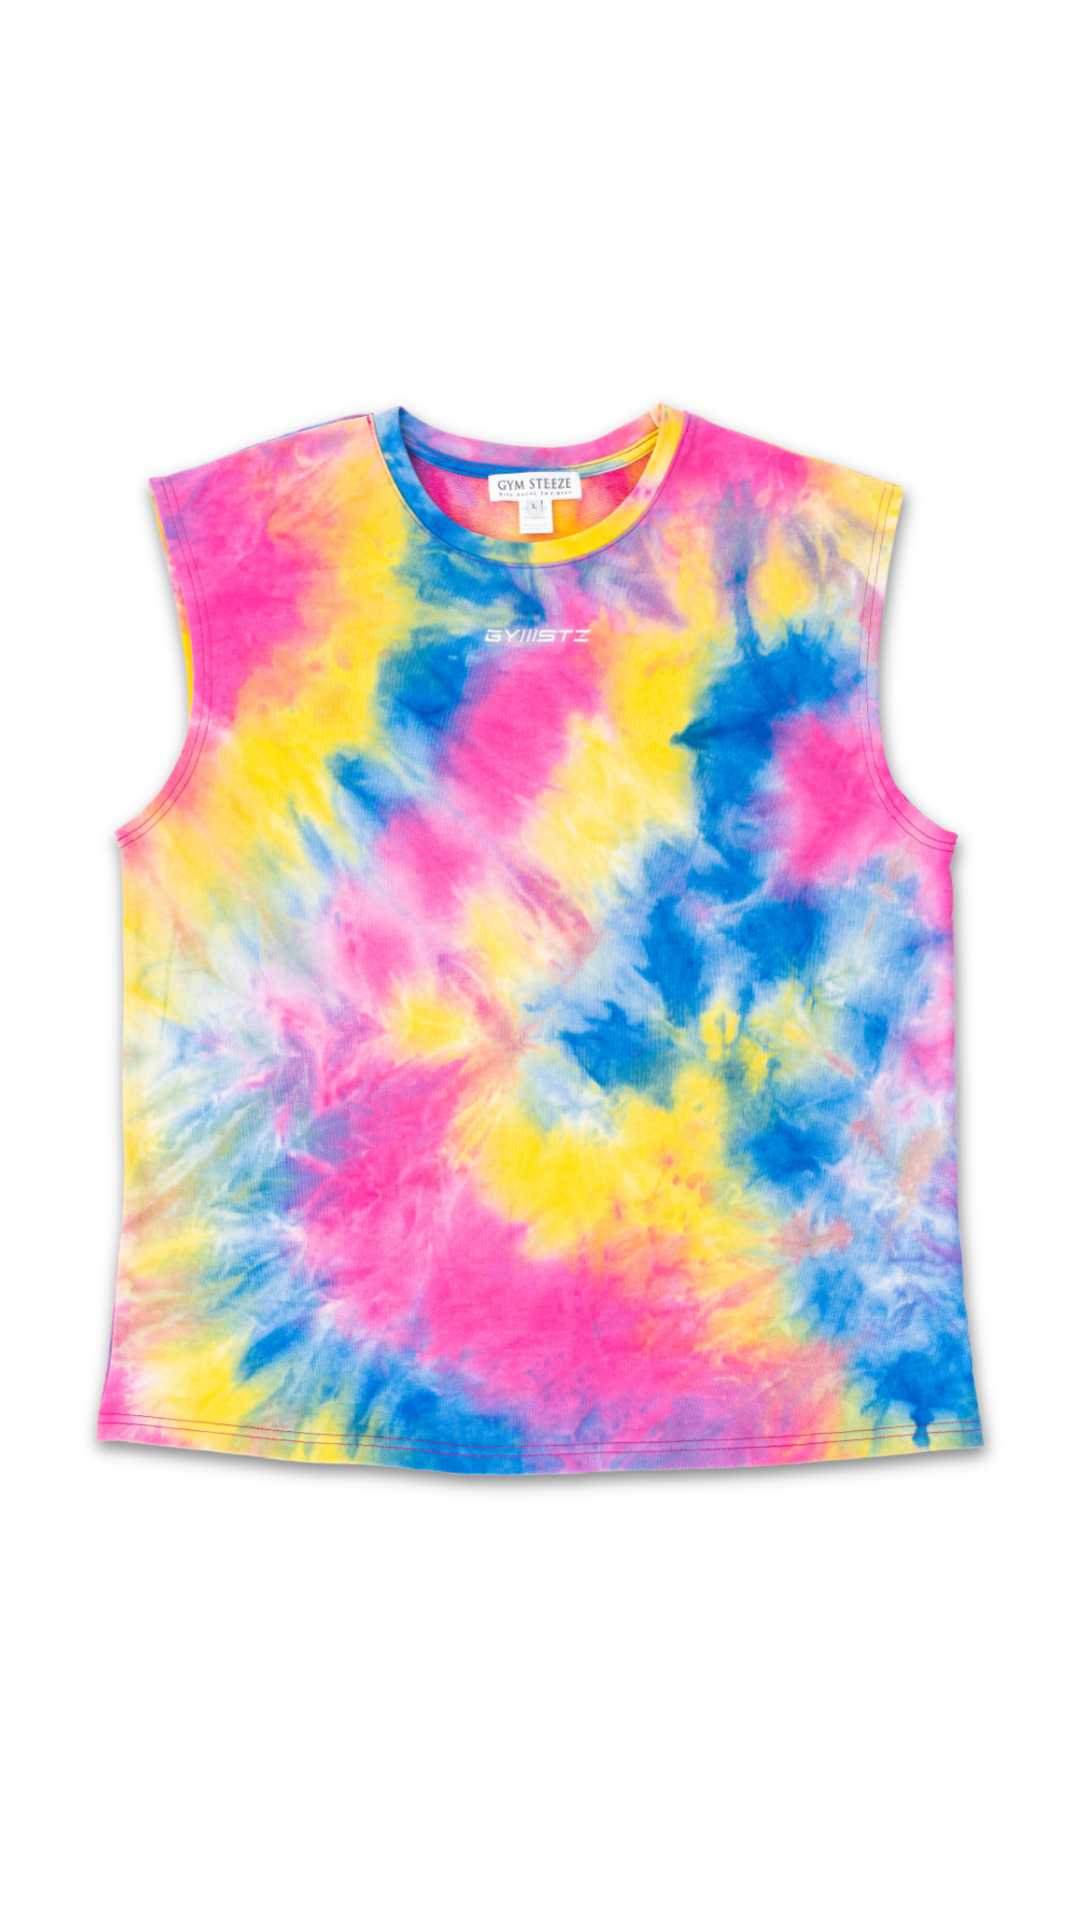 TIE-DYE SLEEVELESS - ACID TRIP